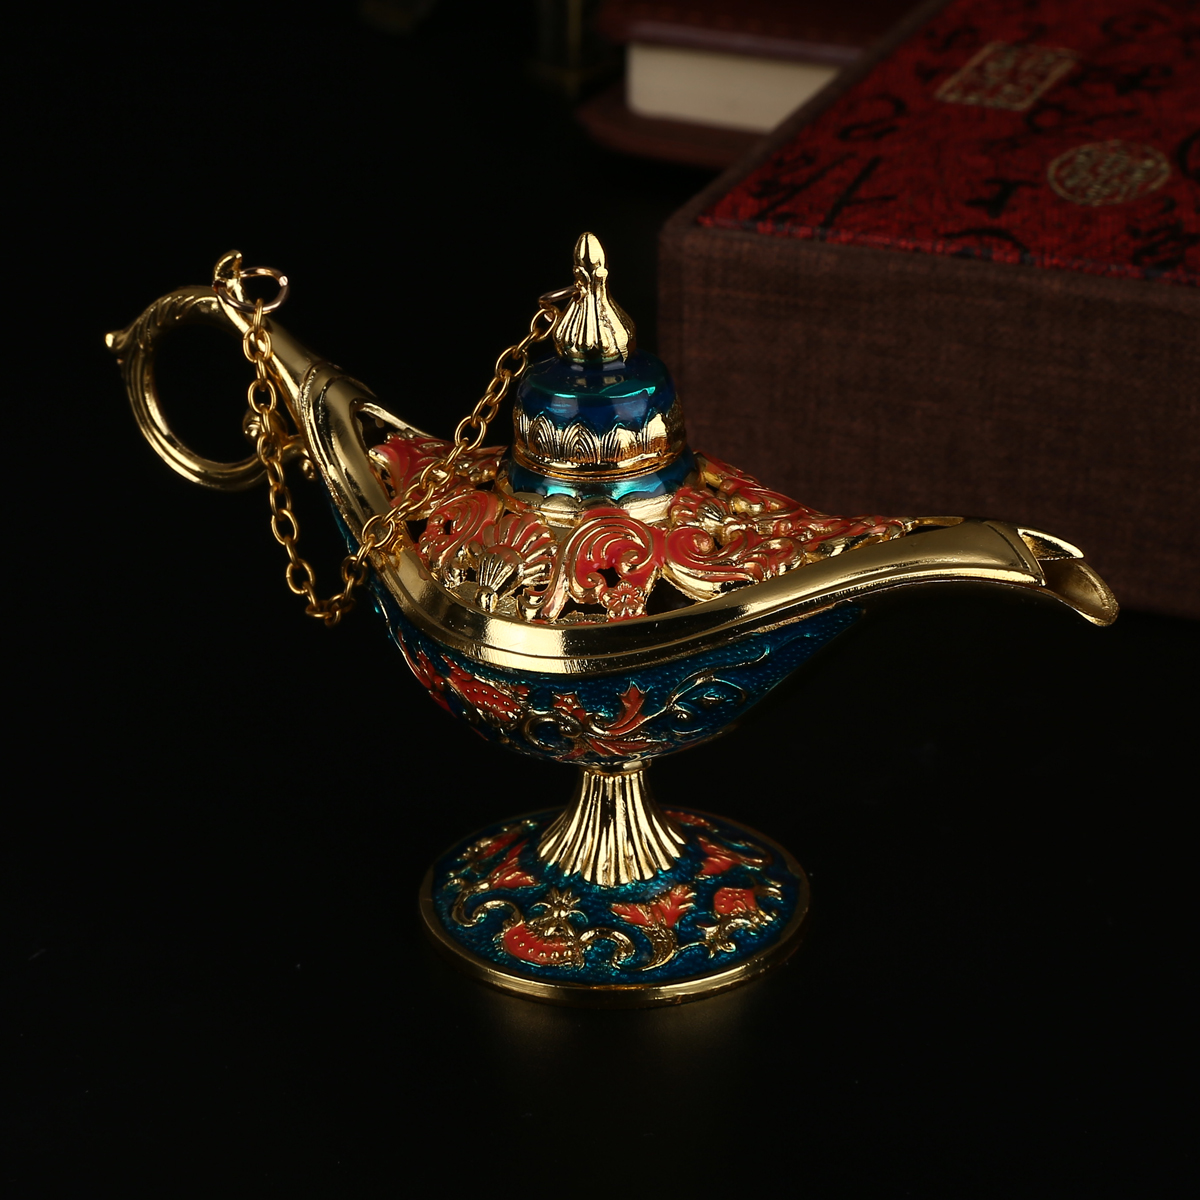 Traditional Aladdin Lamp Magic Lamp Retro Censer Panto Tea Pot Genie Oil Lamp Zinc Alloy For Home Decor Ornaments in Figurines Miniatures from Home Garden